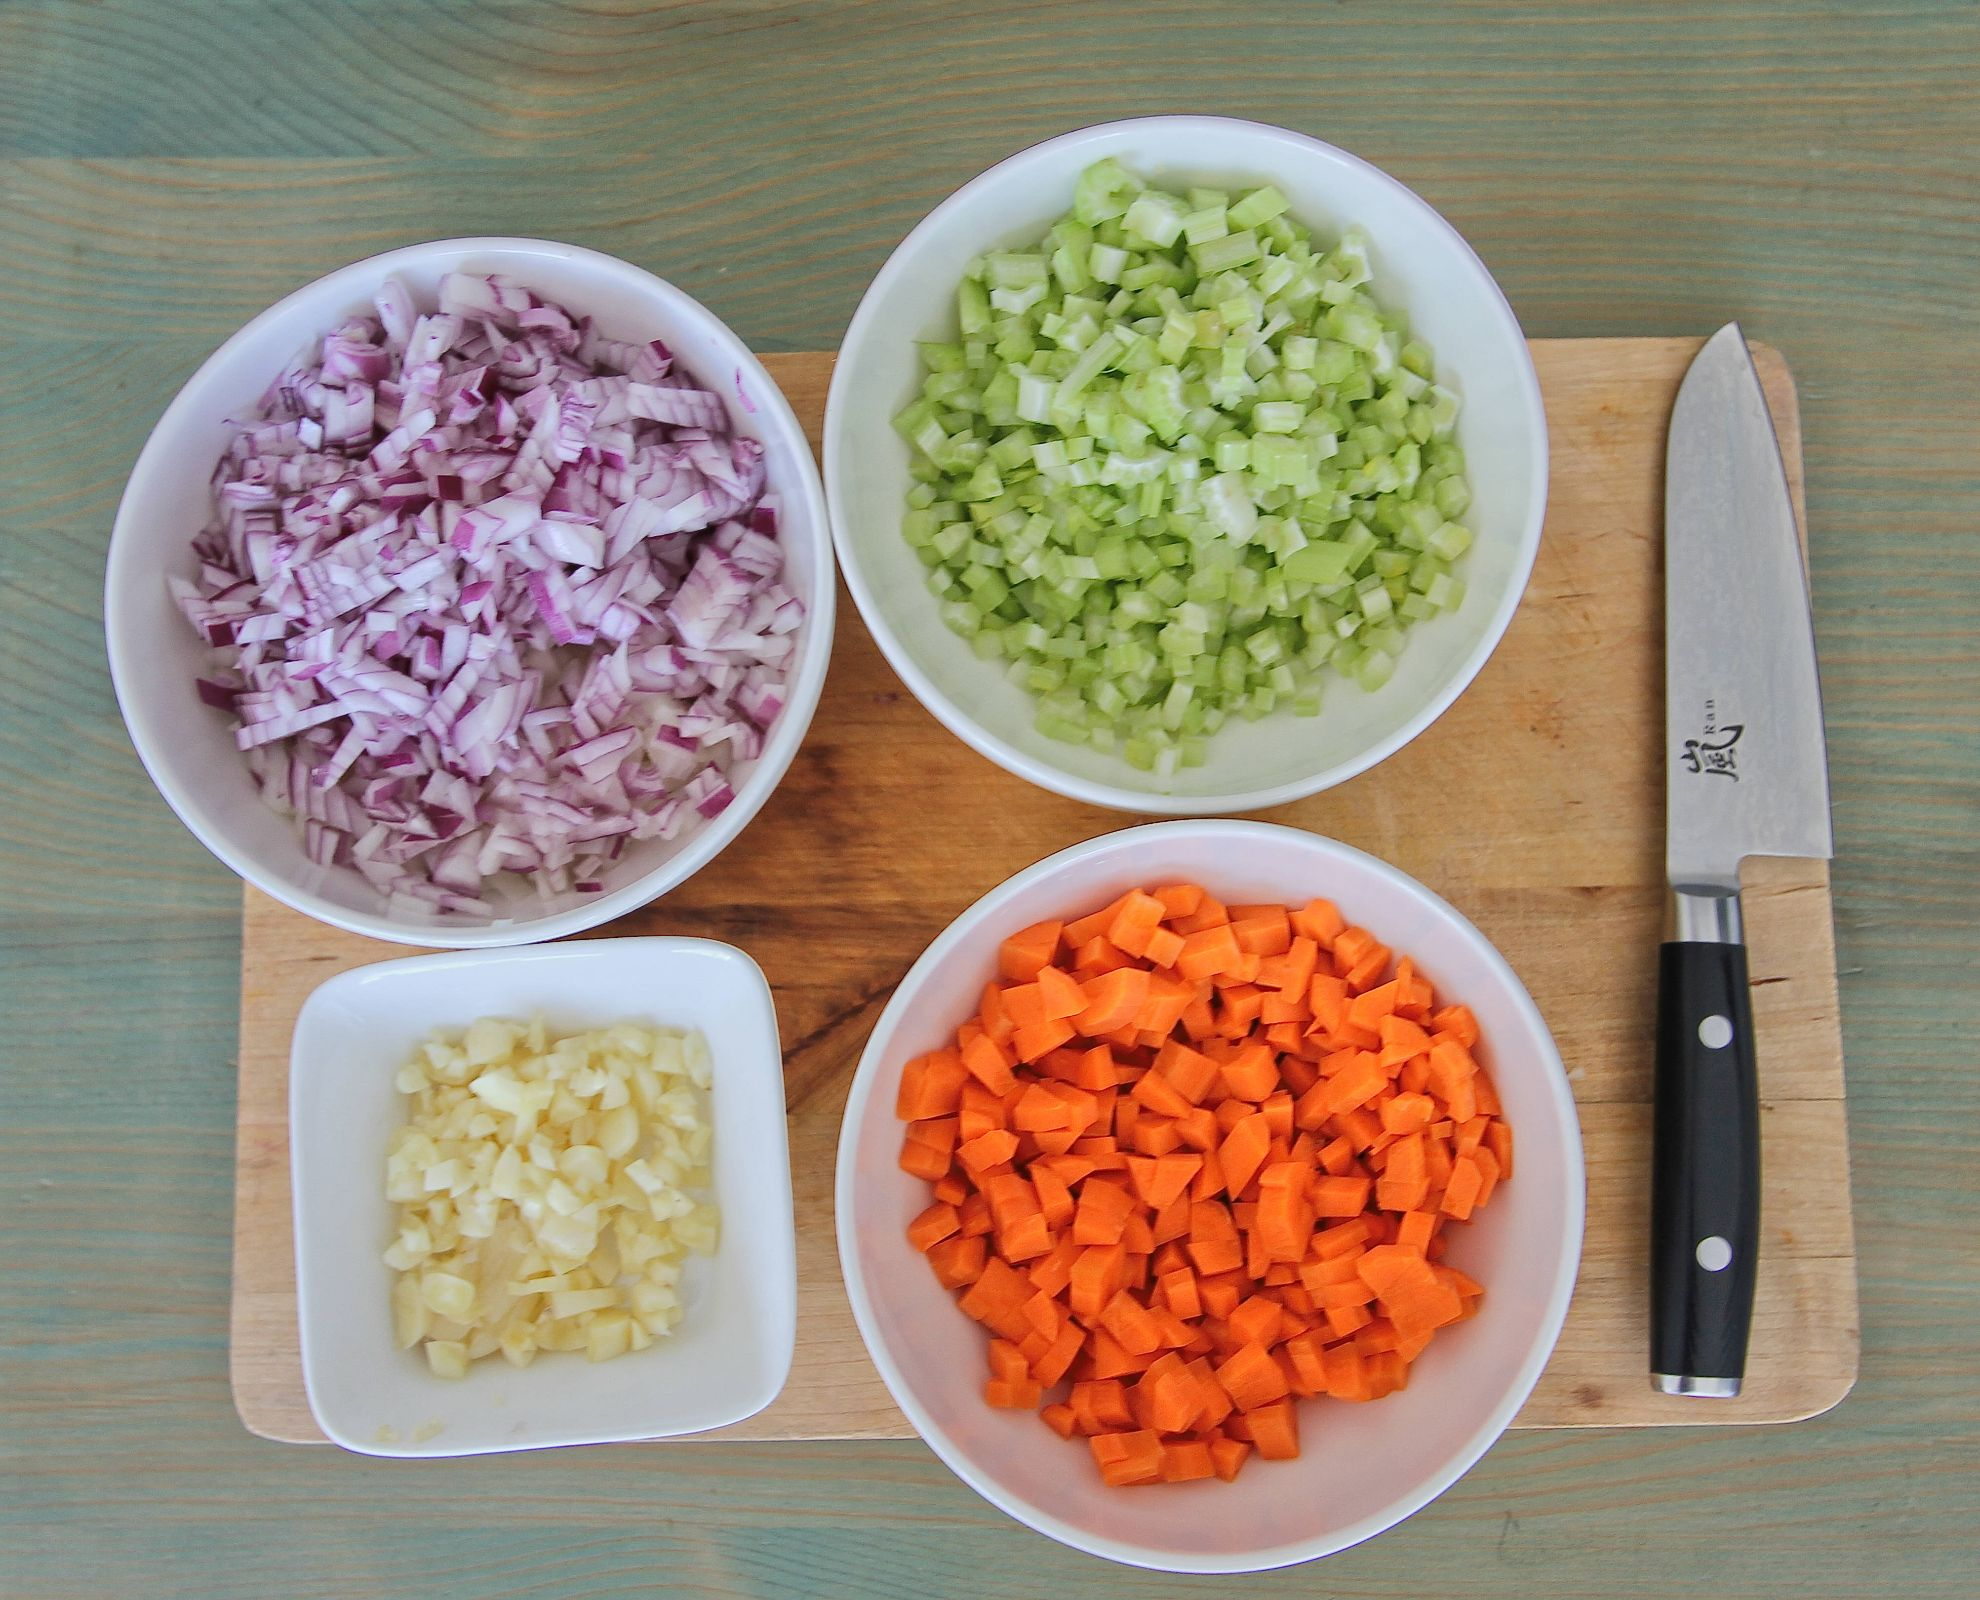 Dicing vegetables